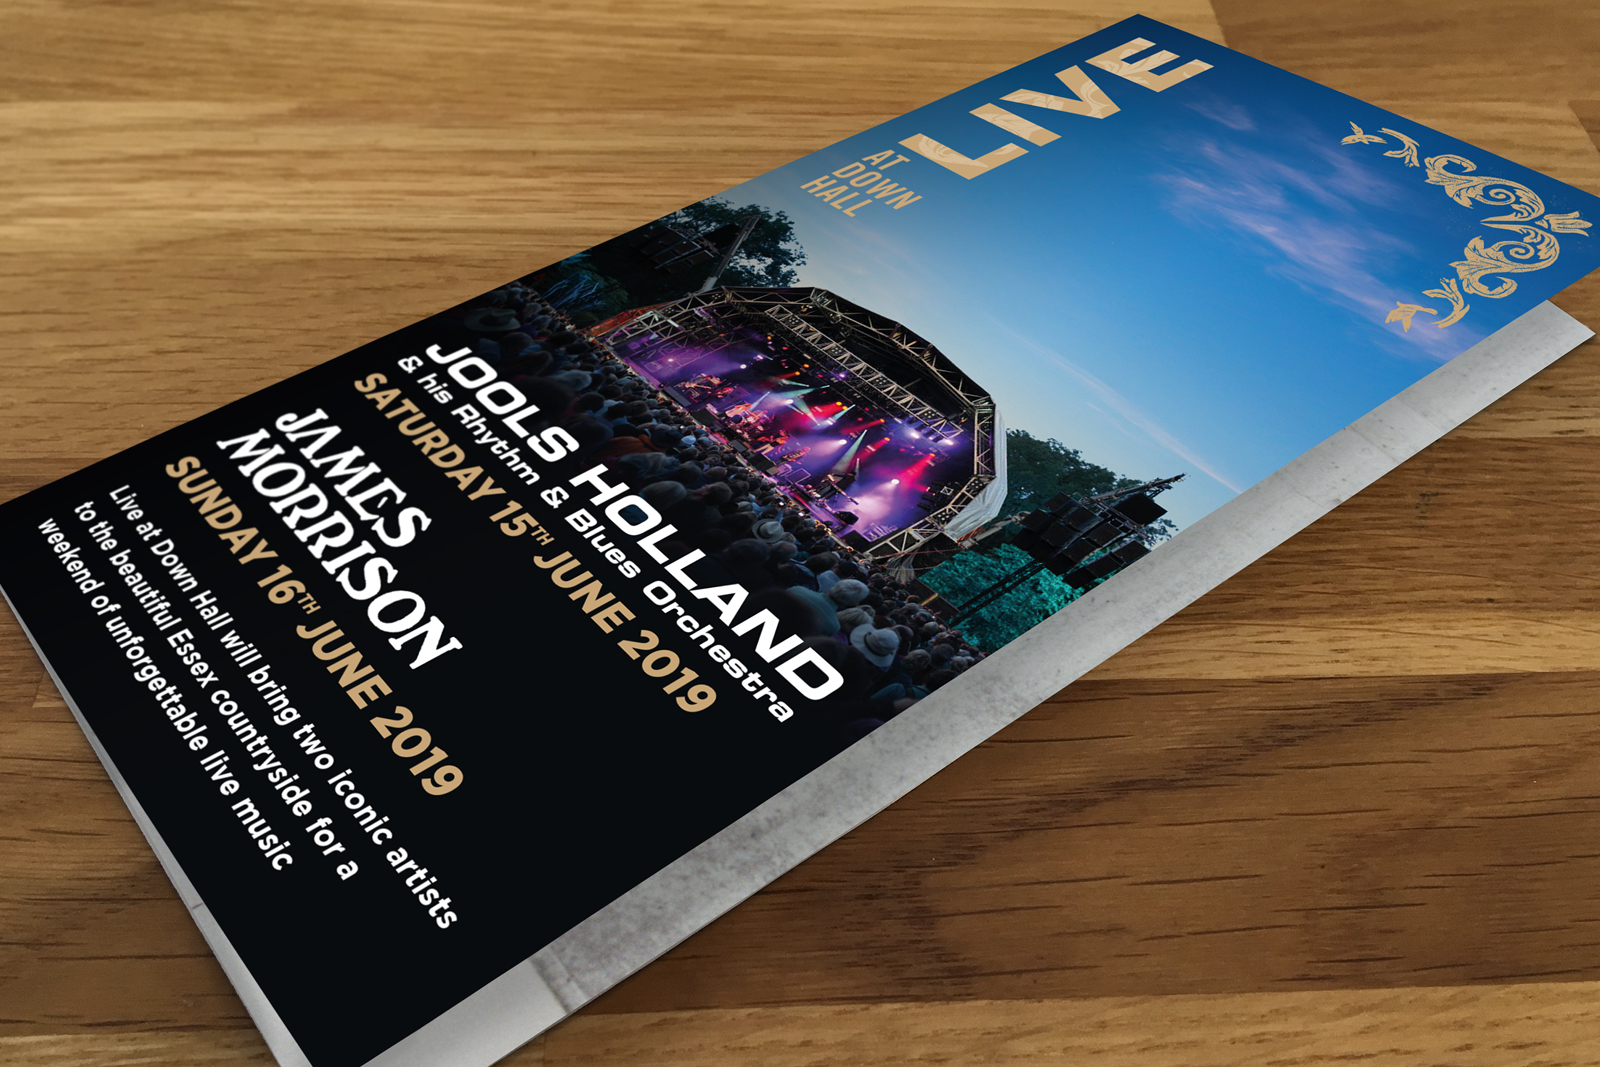 Live at Down Hall print marketing leaflet, featuring Jools Holland and James Morrison